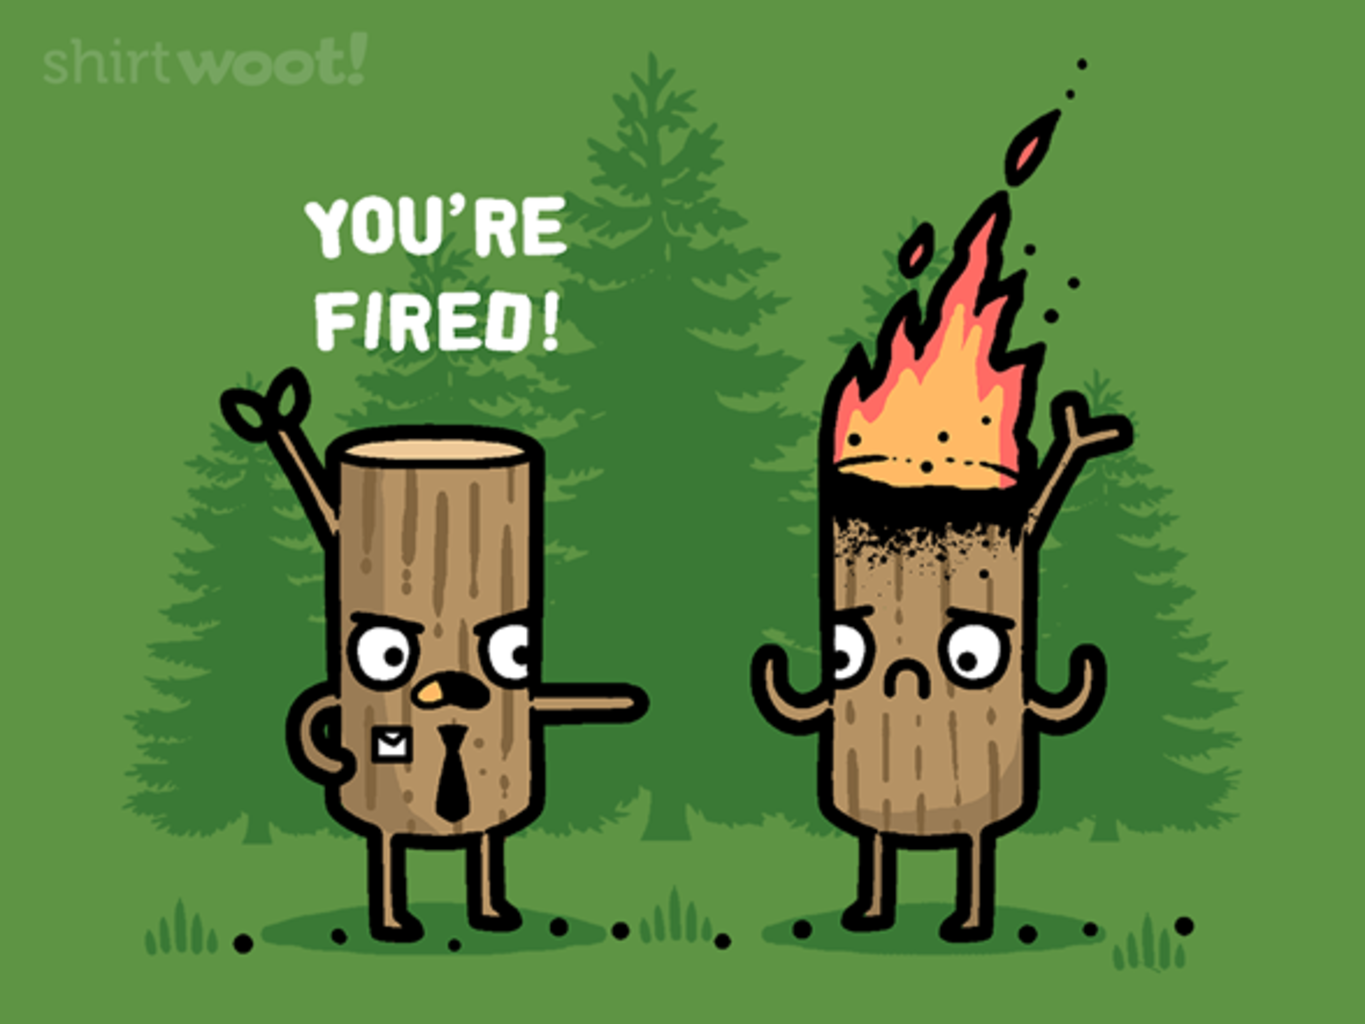 Woot!: You're Fired